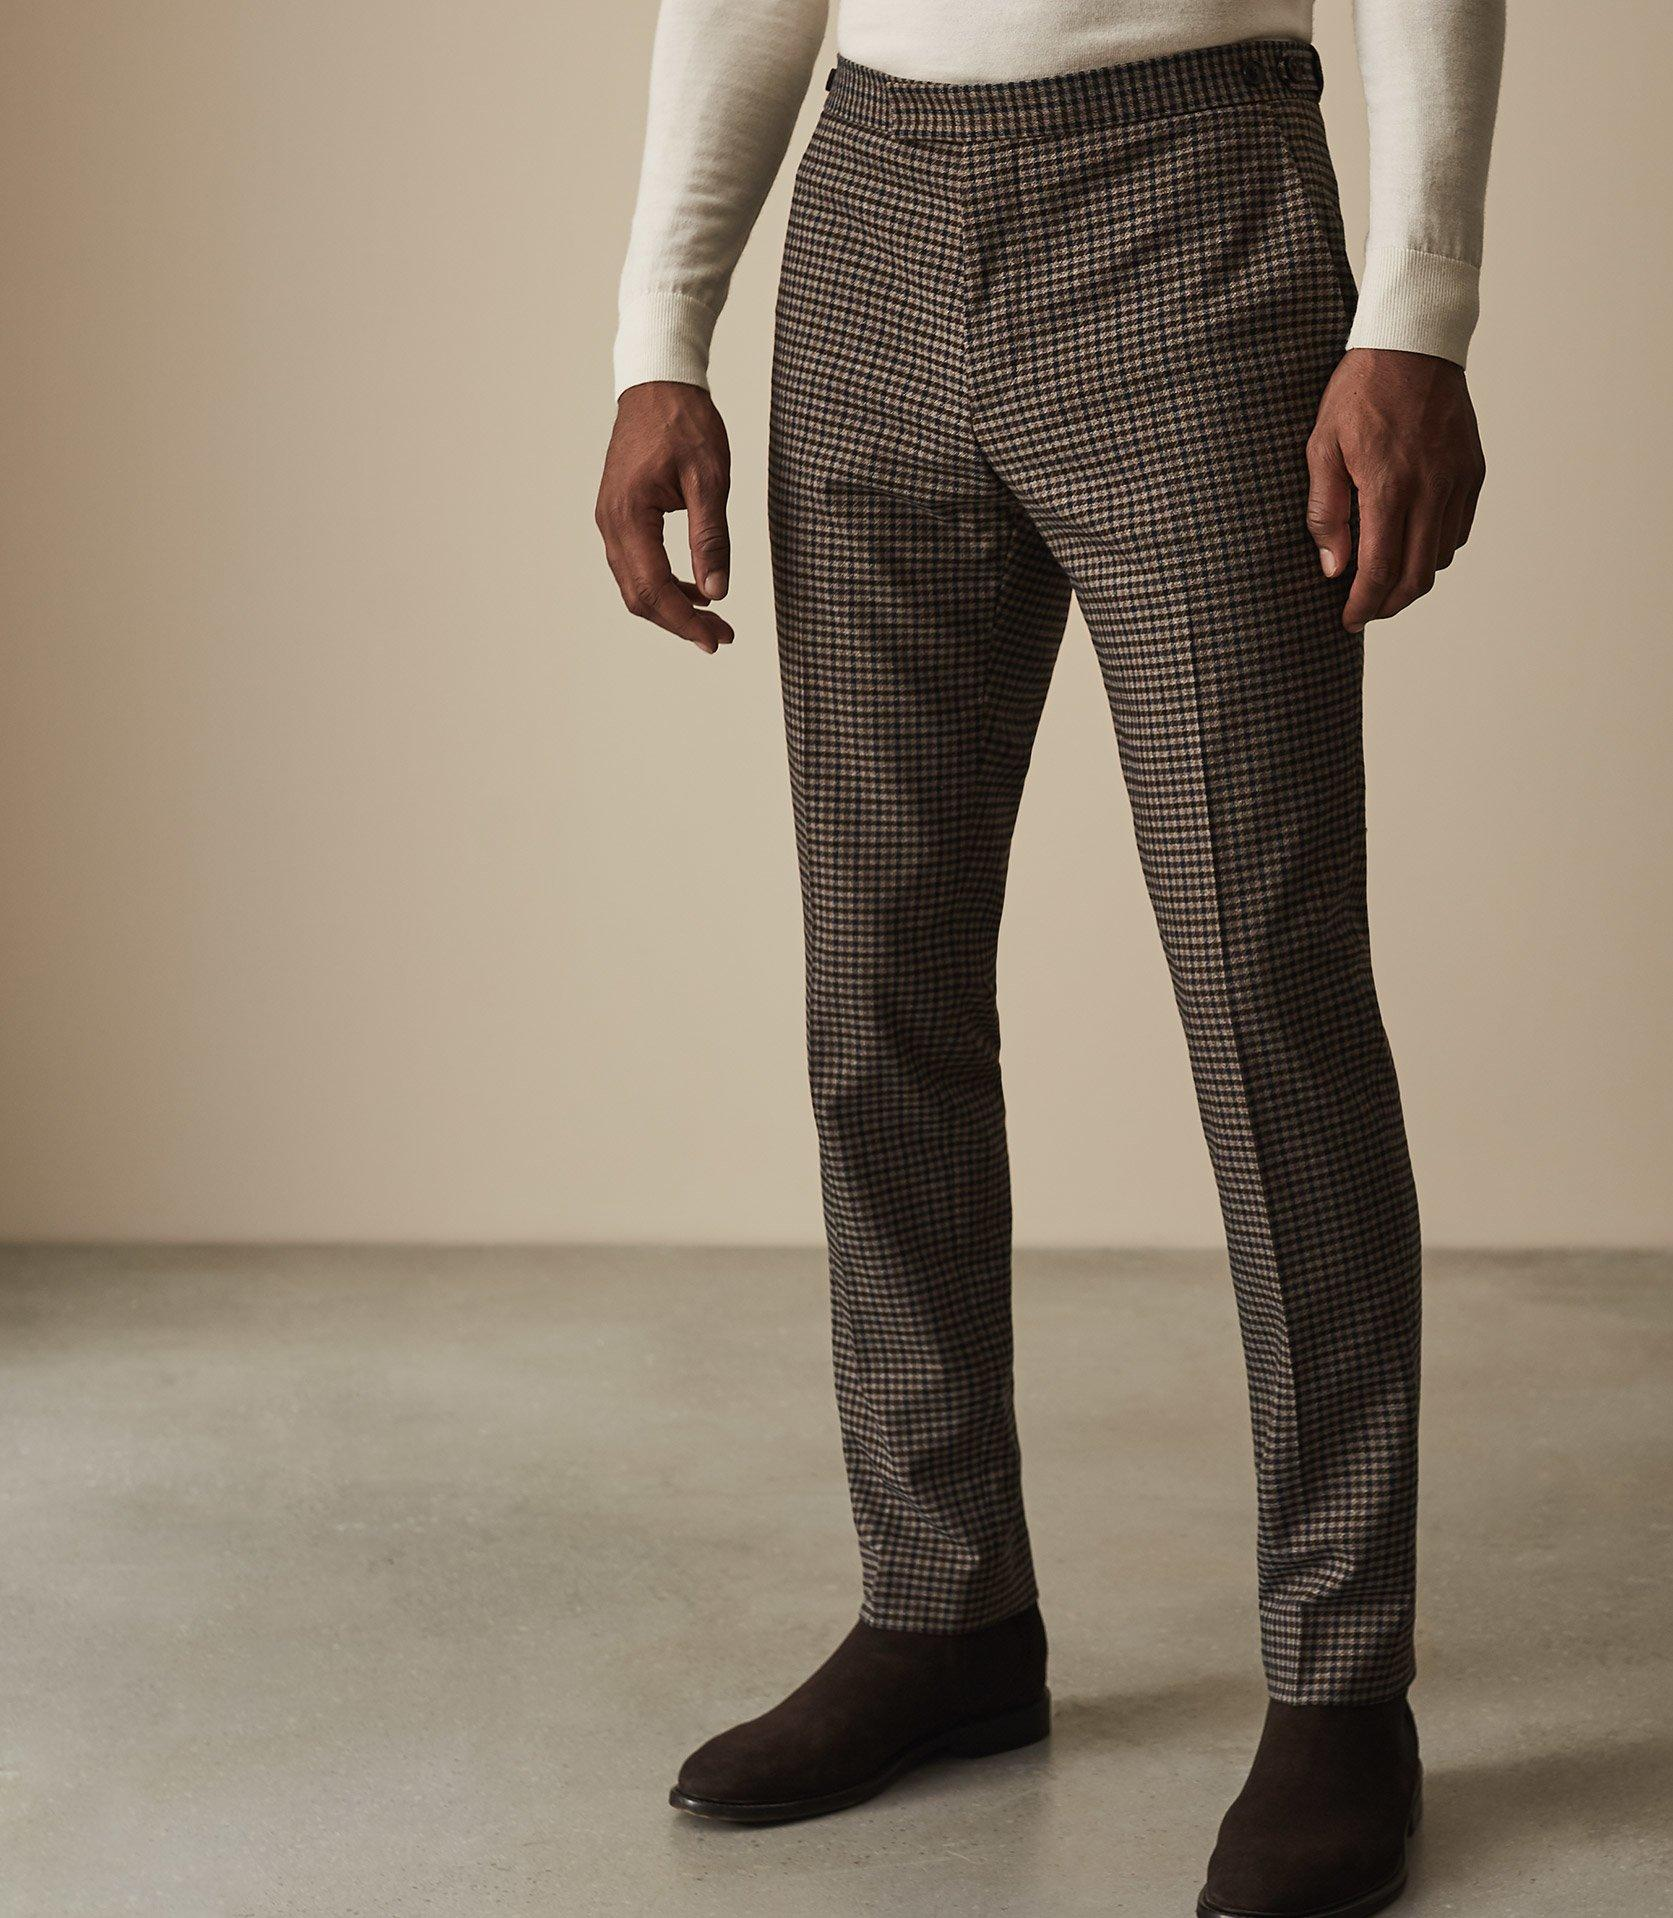 7d2efb2e0083 Lyst - Reiss Tripper - Houndstooth Checked Trousers in Brown for Men